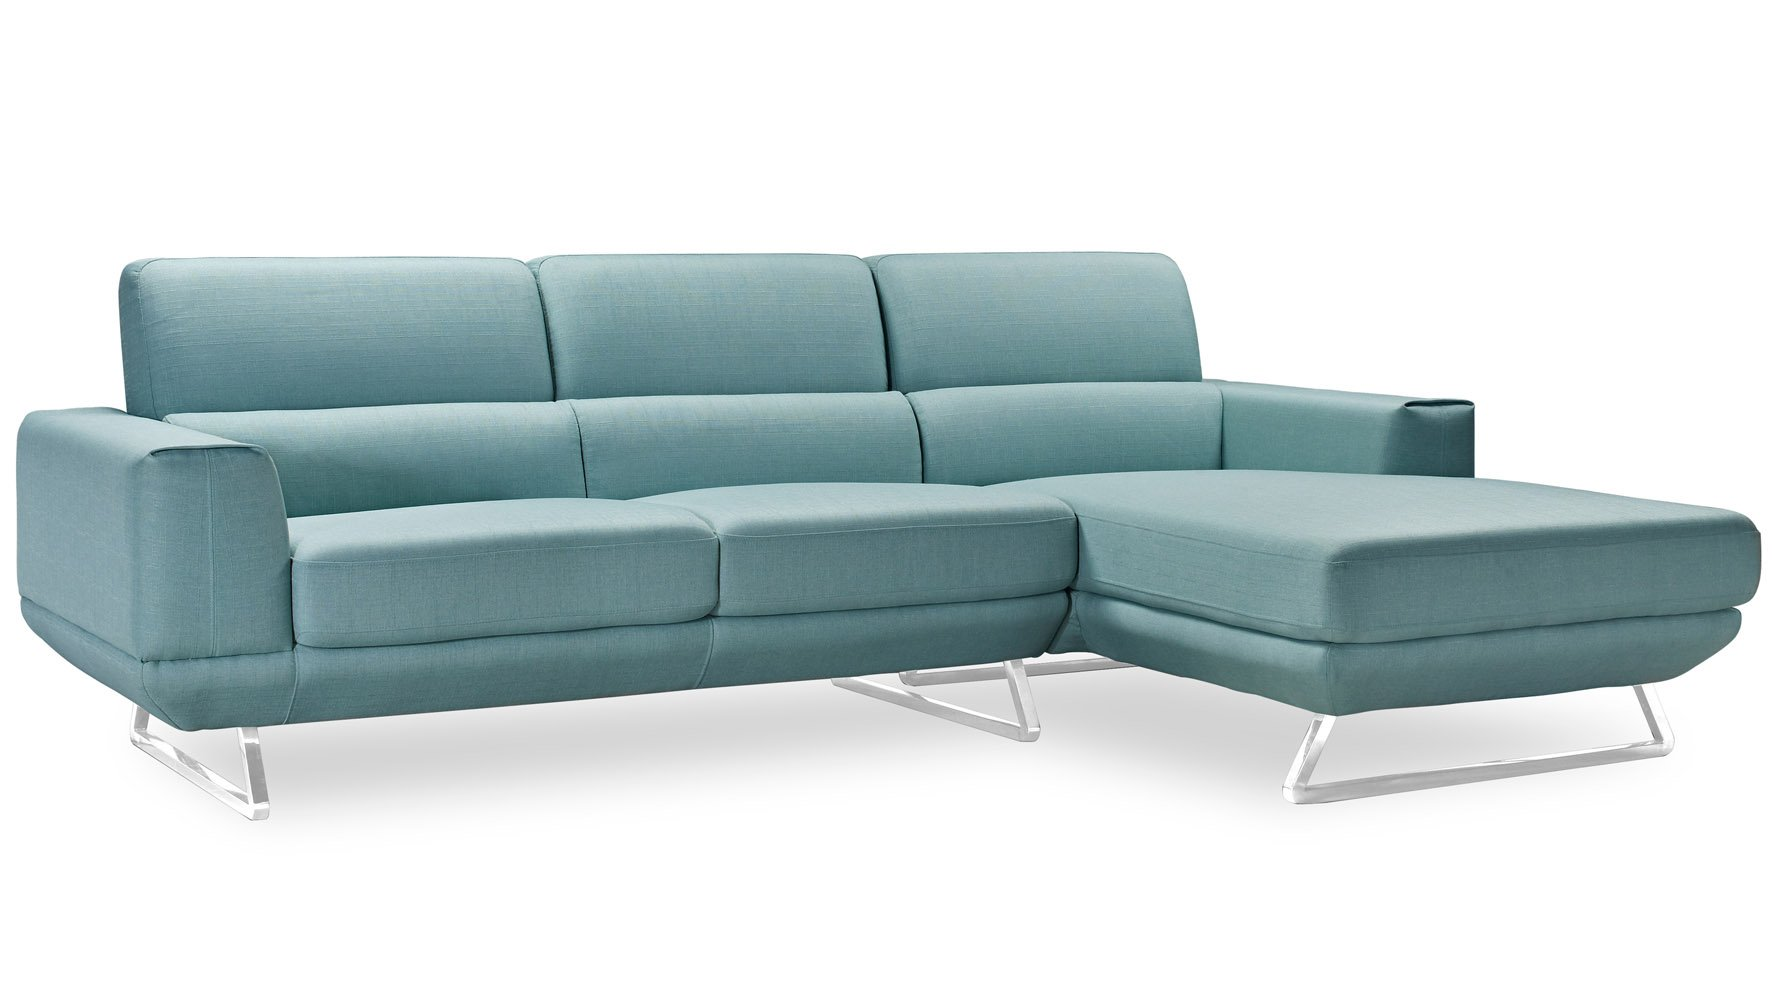 3 Seat Sectional Sofa Nockeby Sofa With Chaise Left